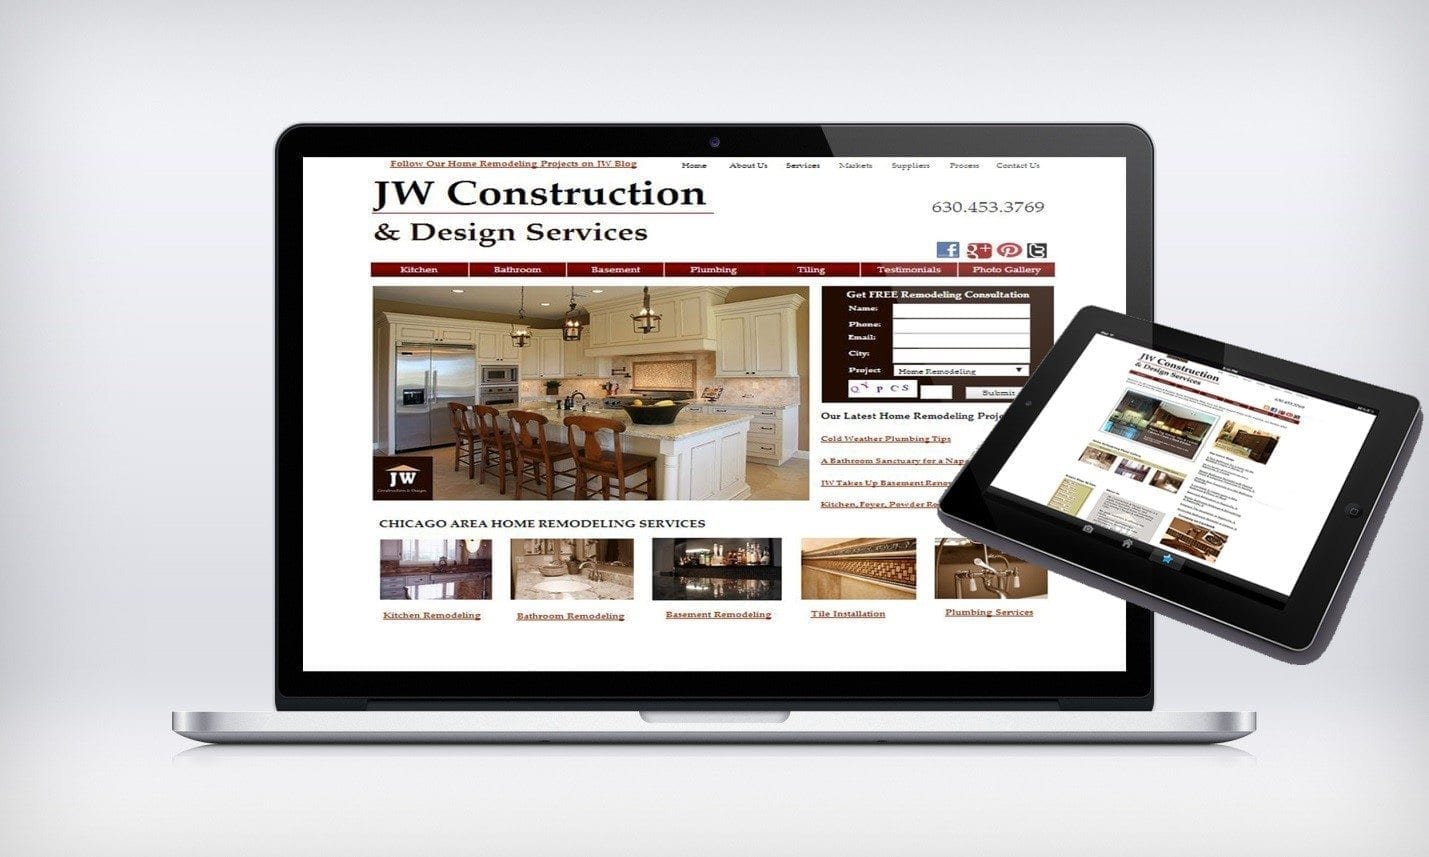 JW Construction & Design Services